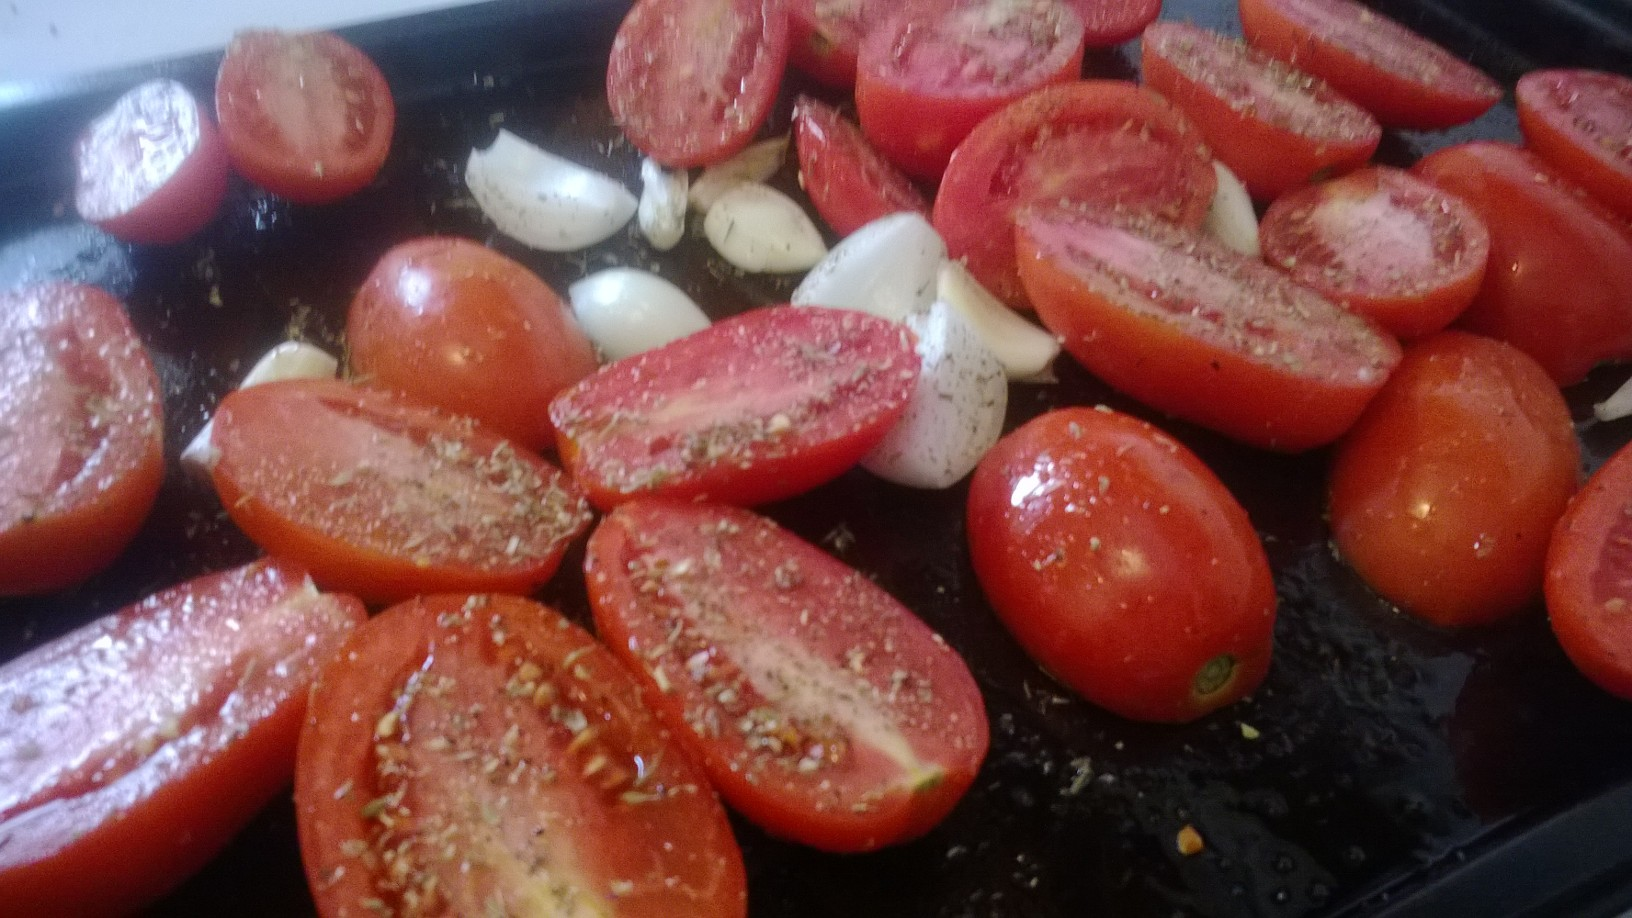 Tomatoes with onion, garlic, salt and pepper and crushed red pepper flakes